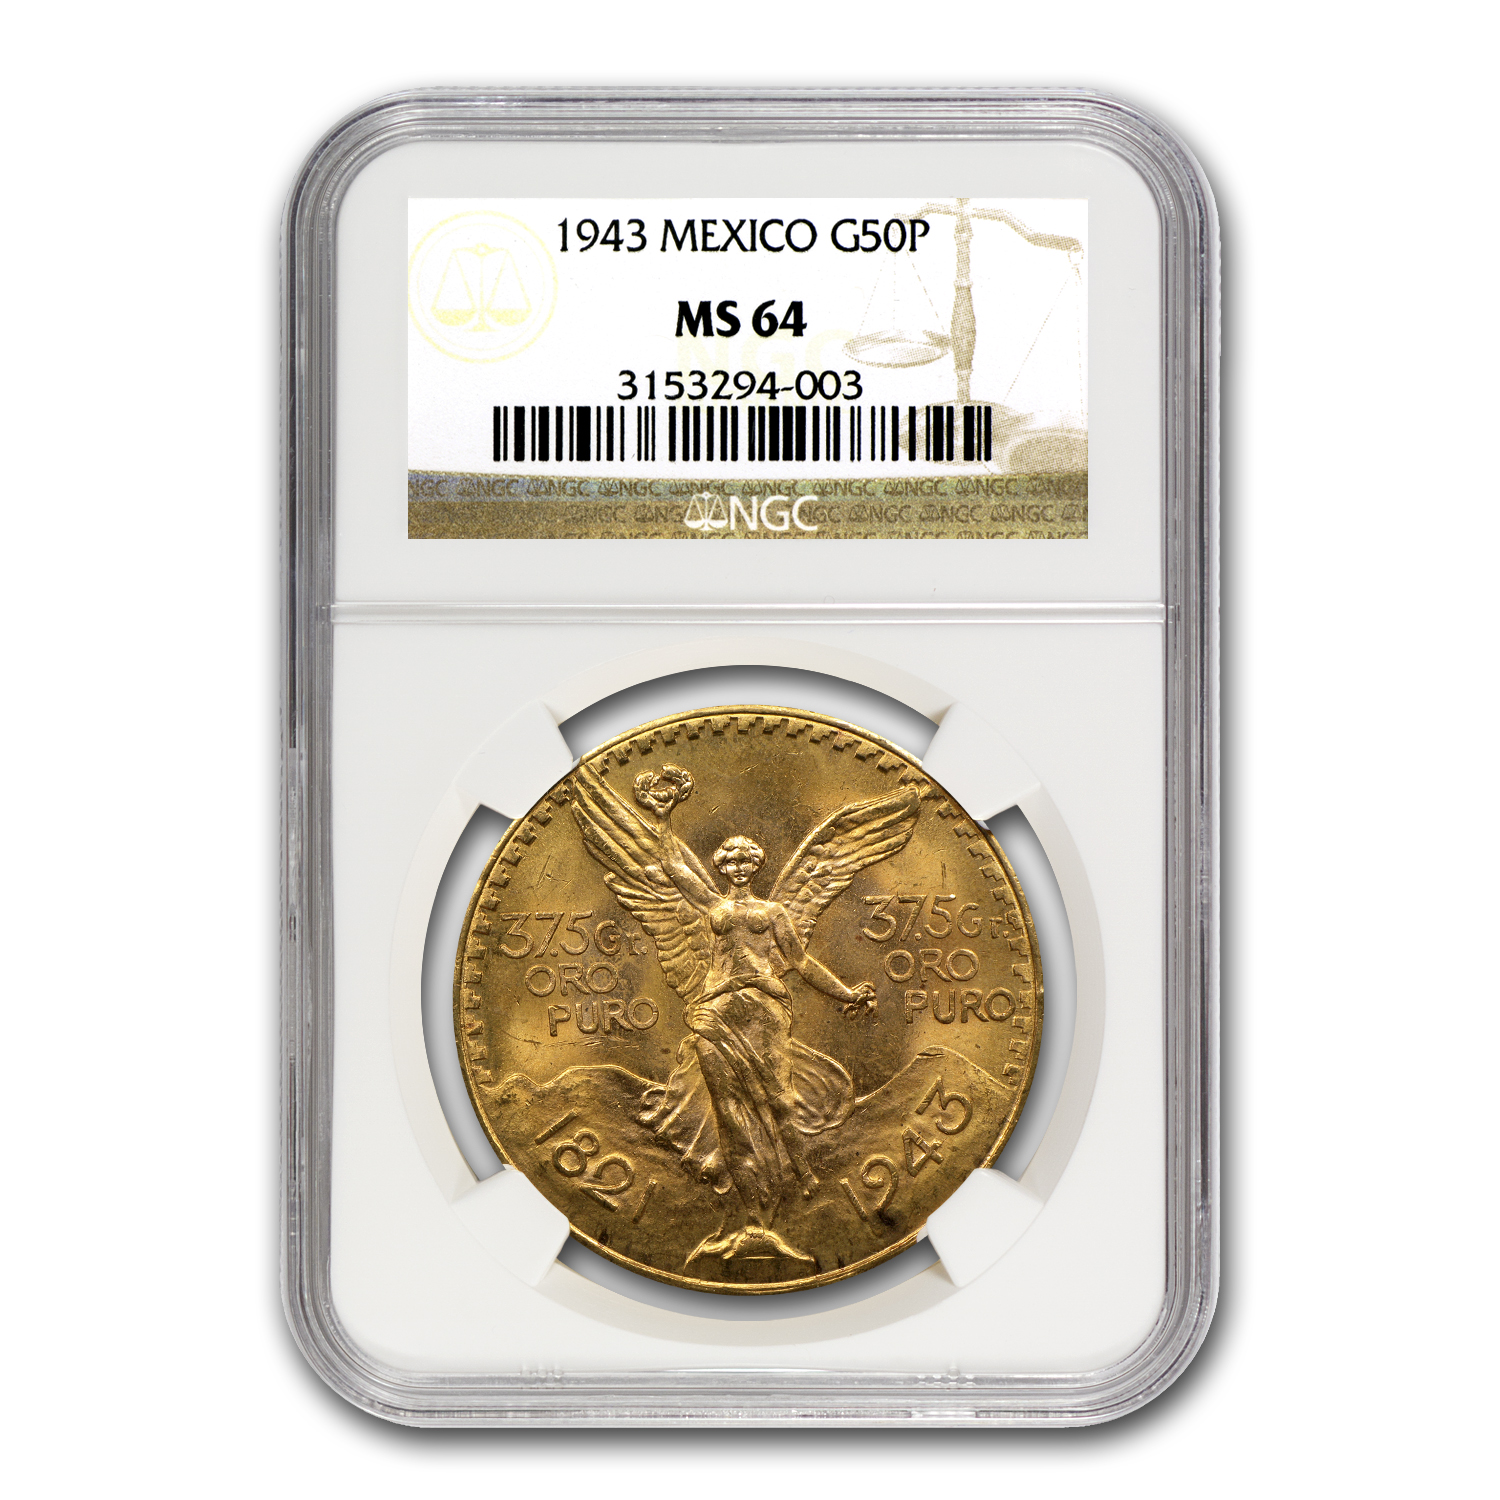 Mexico 1943 50 Pesos Gold Coin - MS-64 NGC